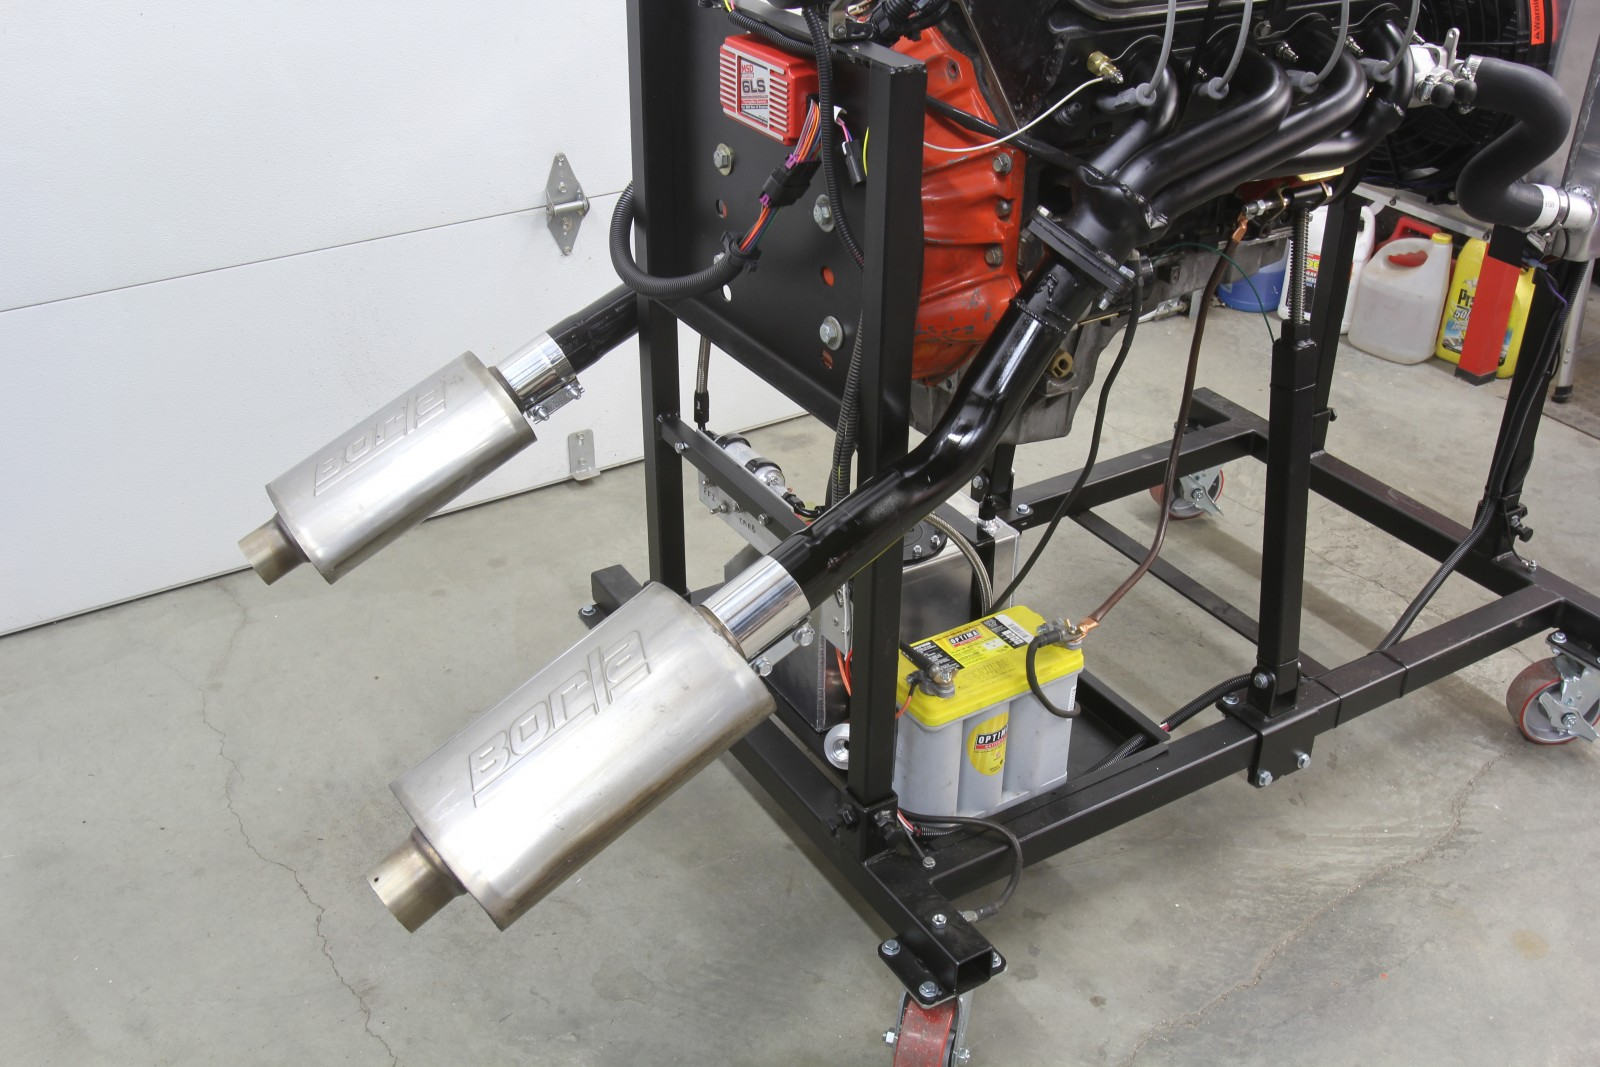 Take a Stand! Building Summit Racing's Engine Test Stand